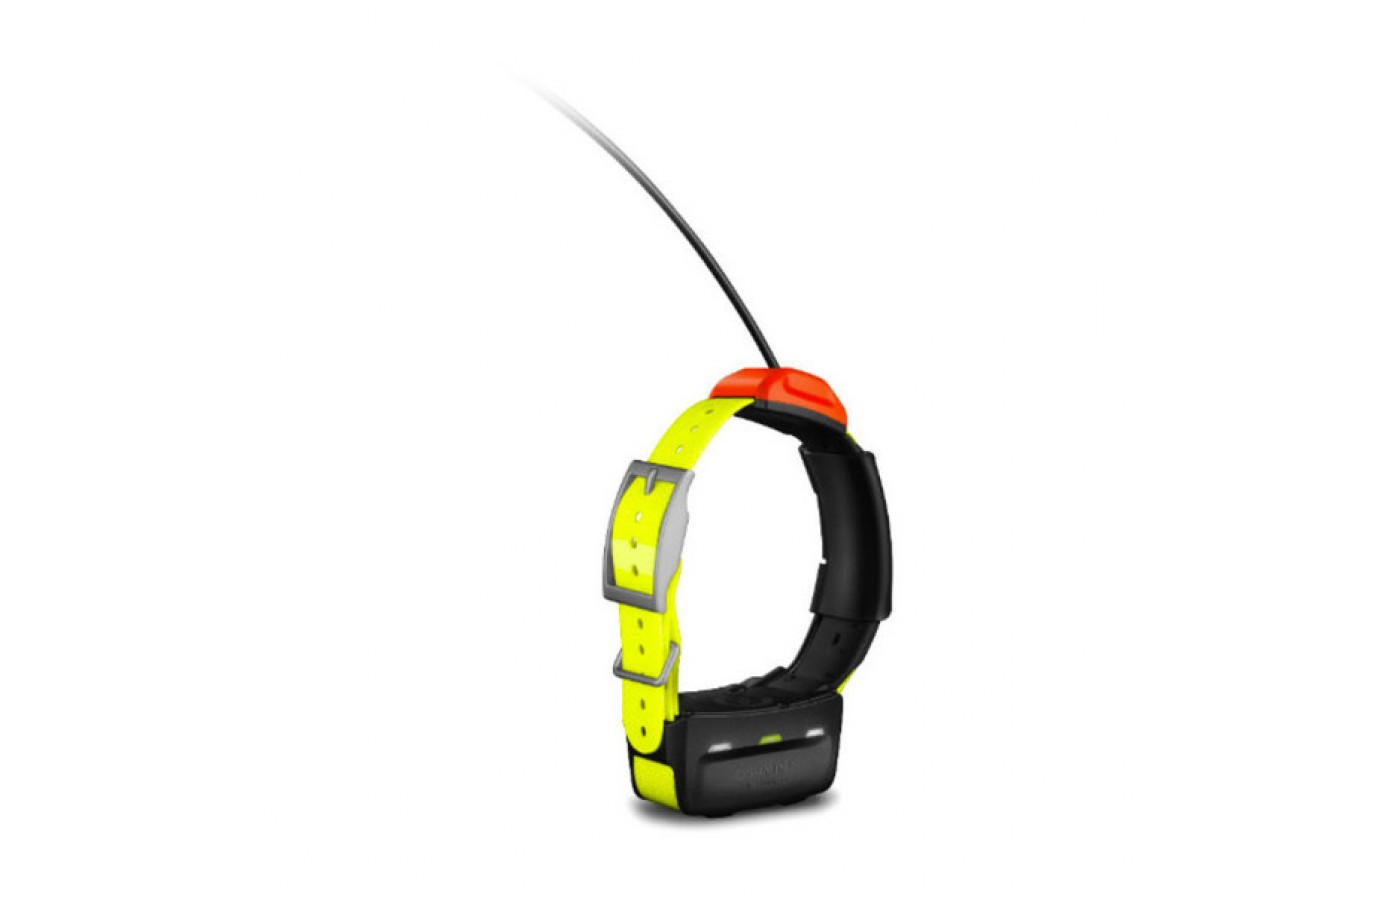 The Garmin T5 offers replaceable collar straps.